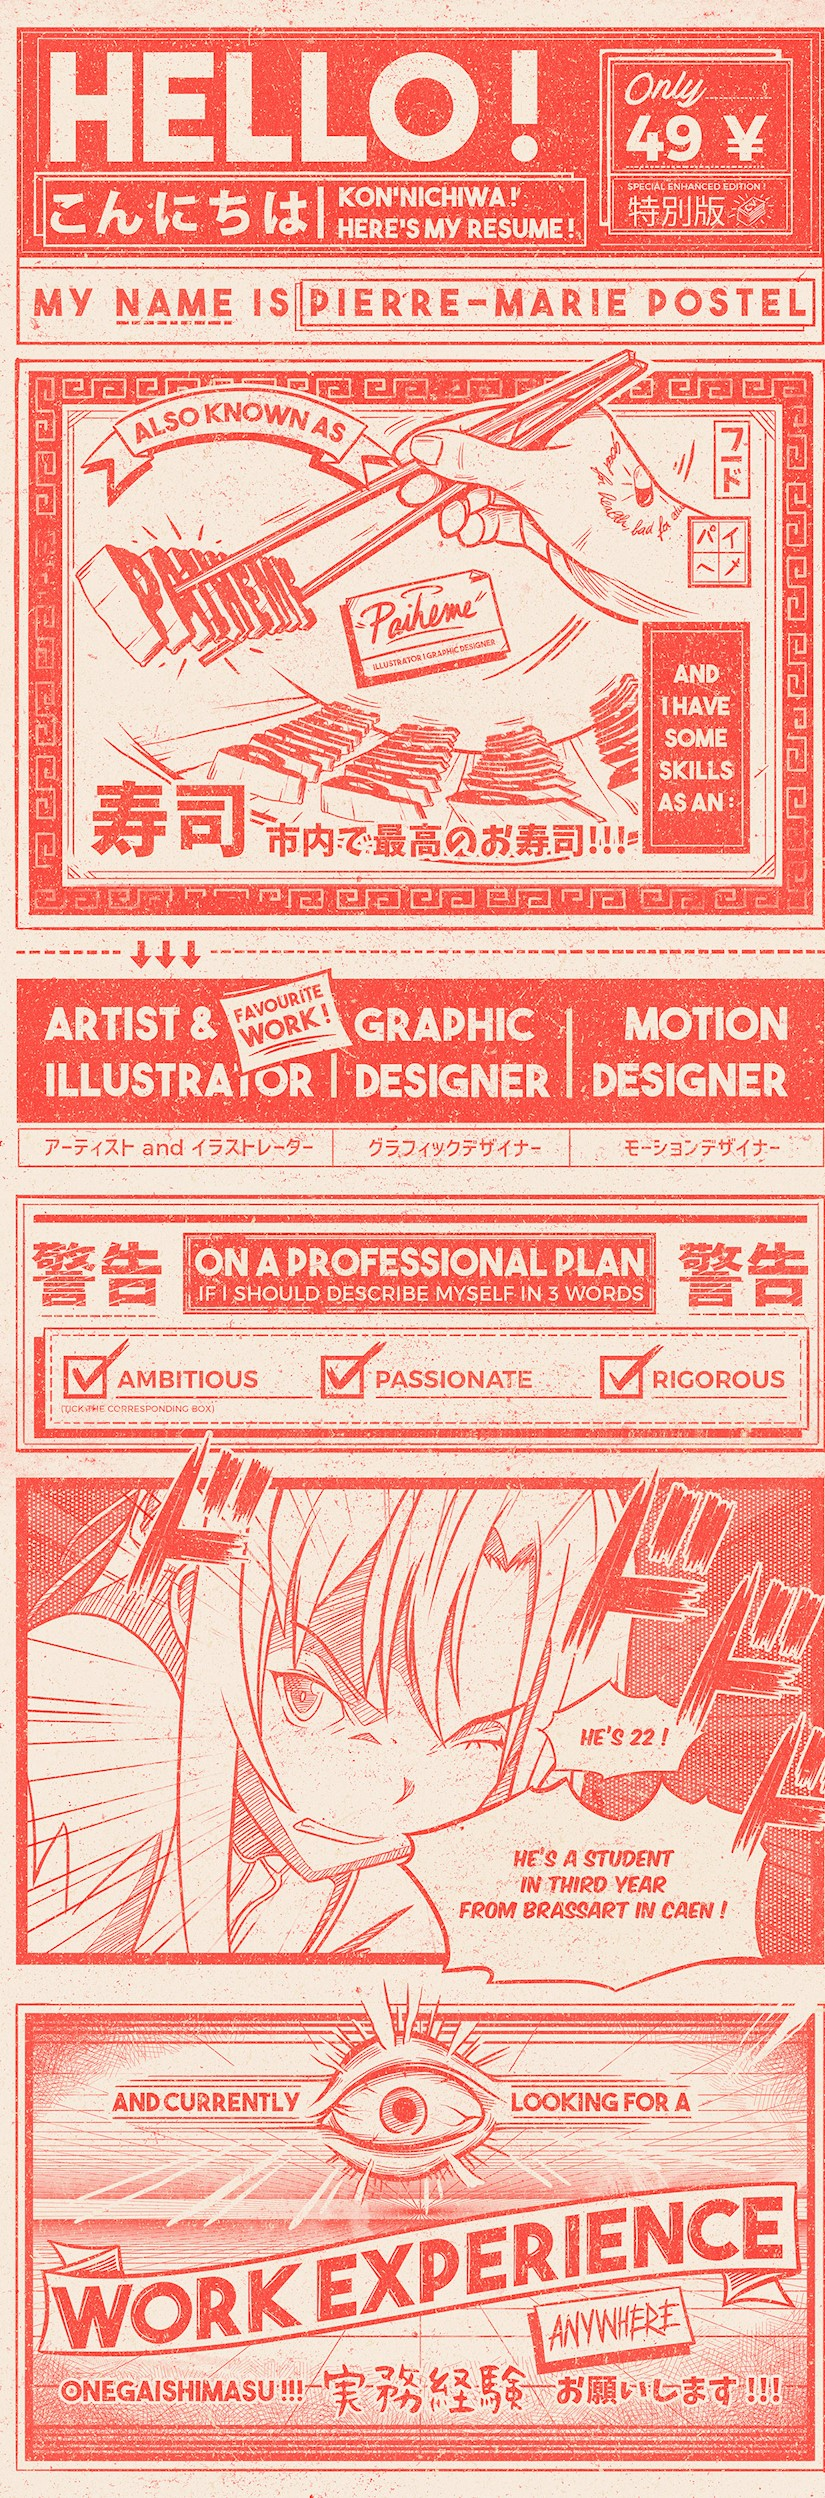 creative graphic designer resume examples templates onedesblog design anime sample Resume Graphic Design Resume Examples